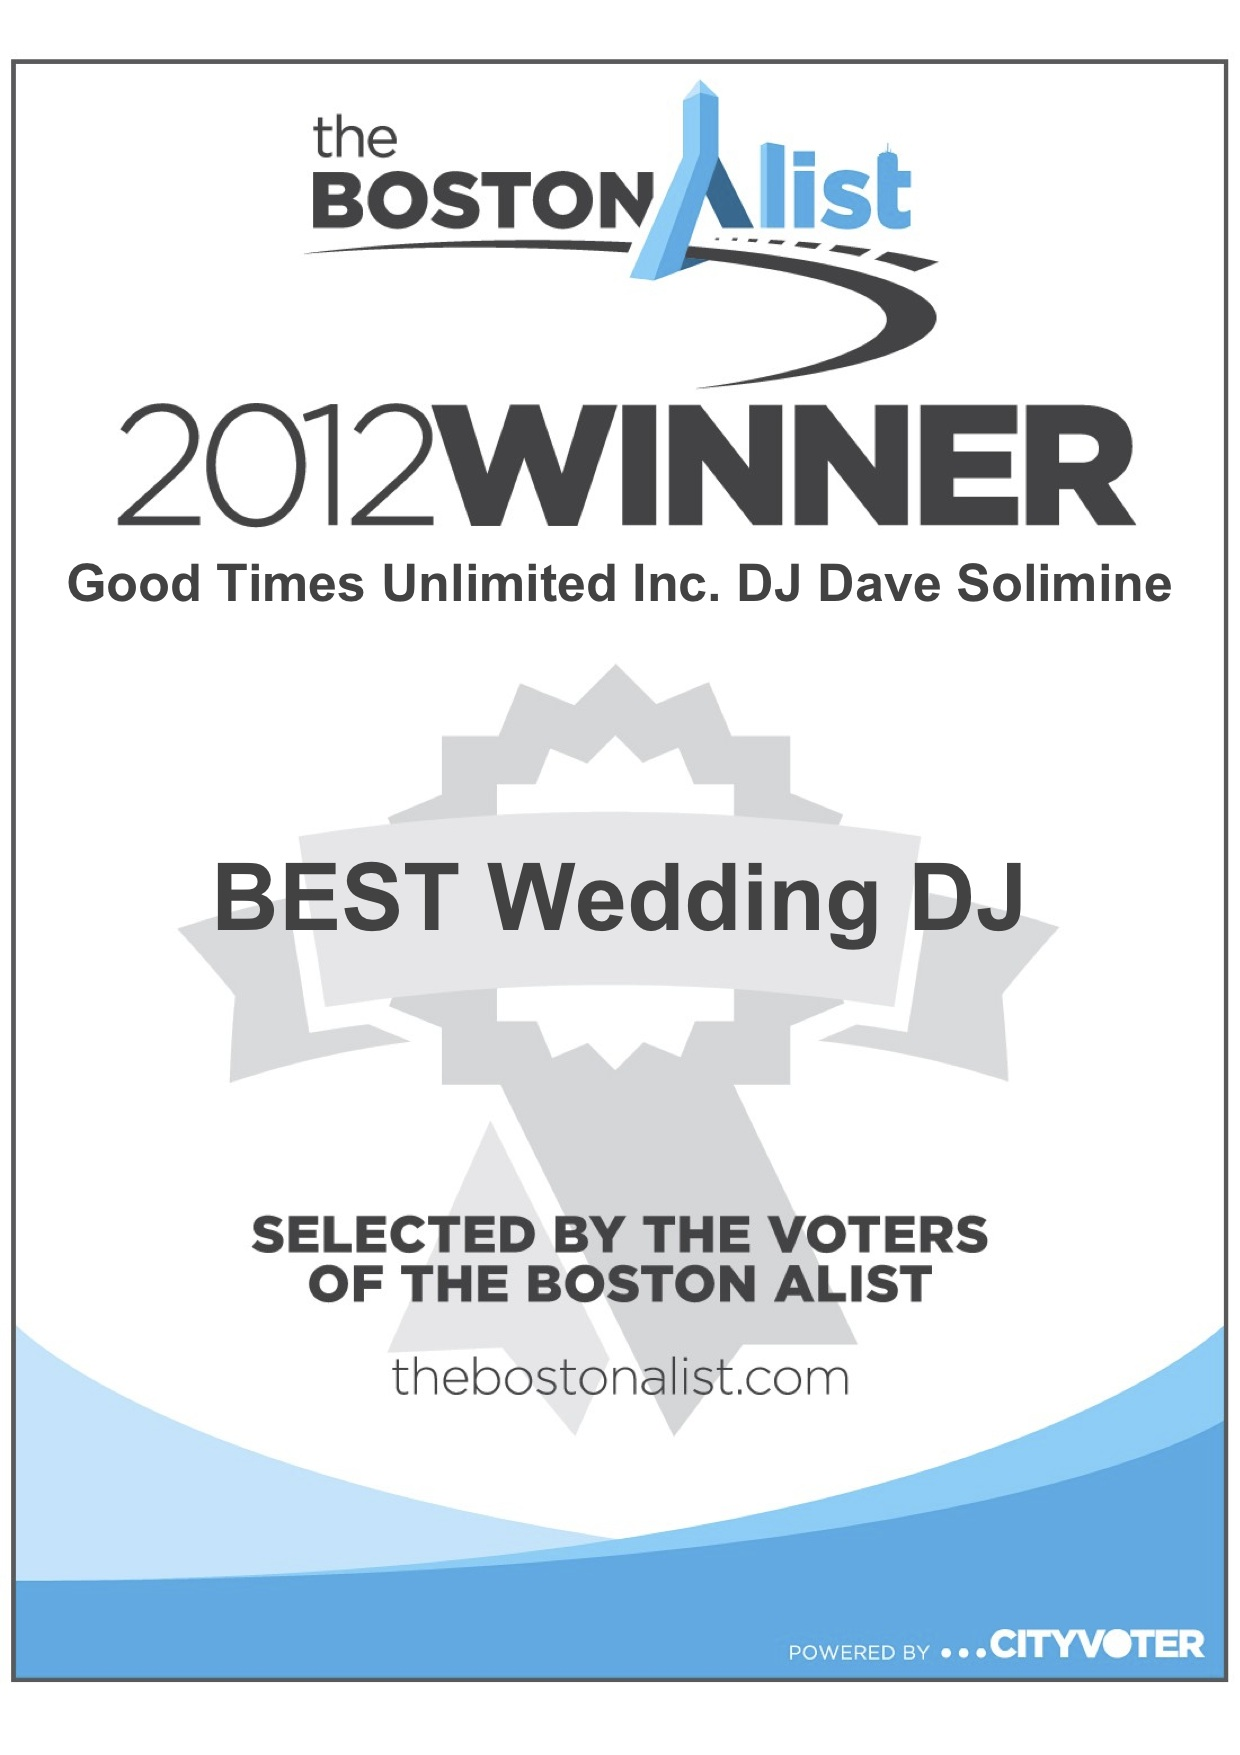 good-times-unlimited-inc-dj-dave-solimine-winners-certificate.jpg